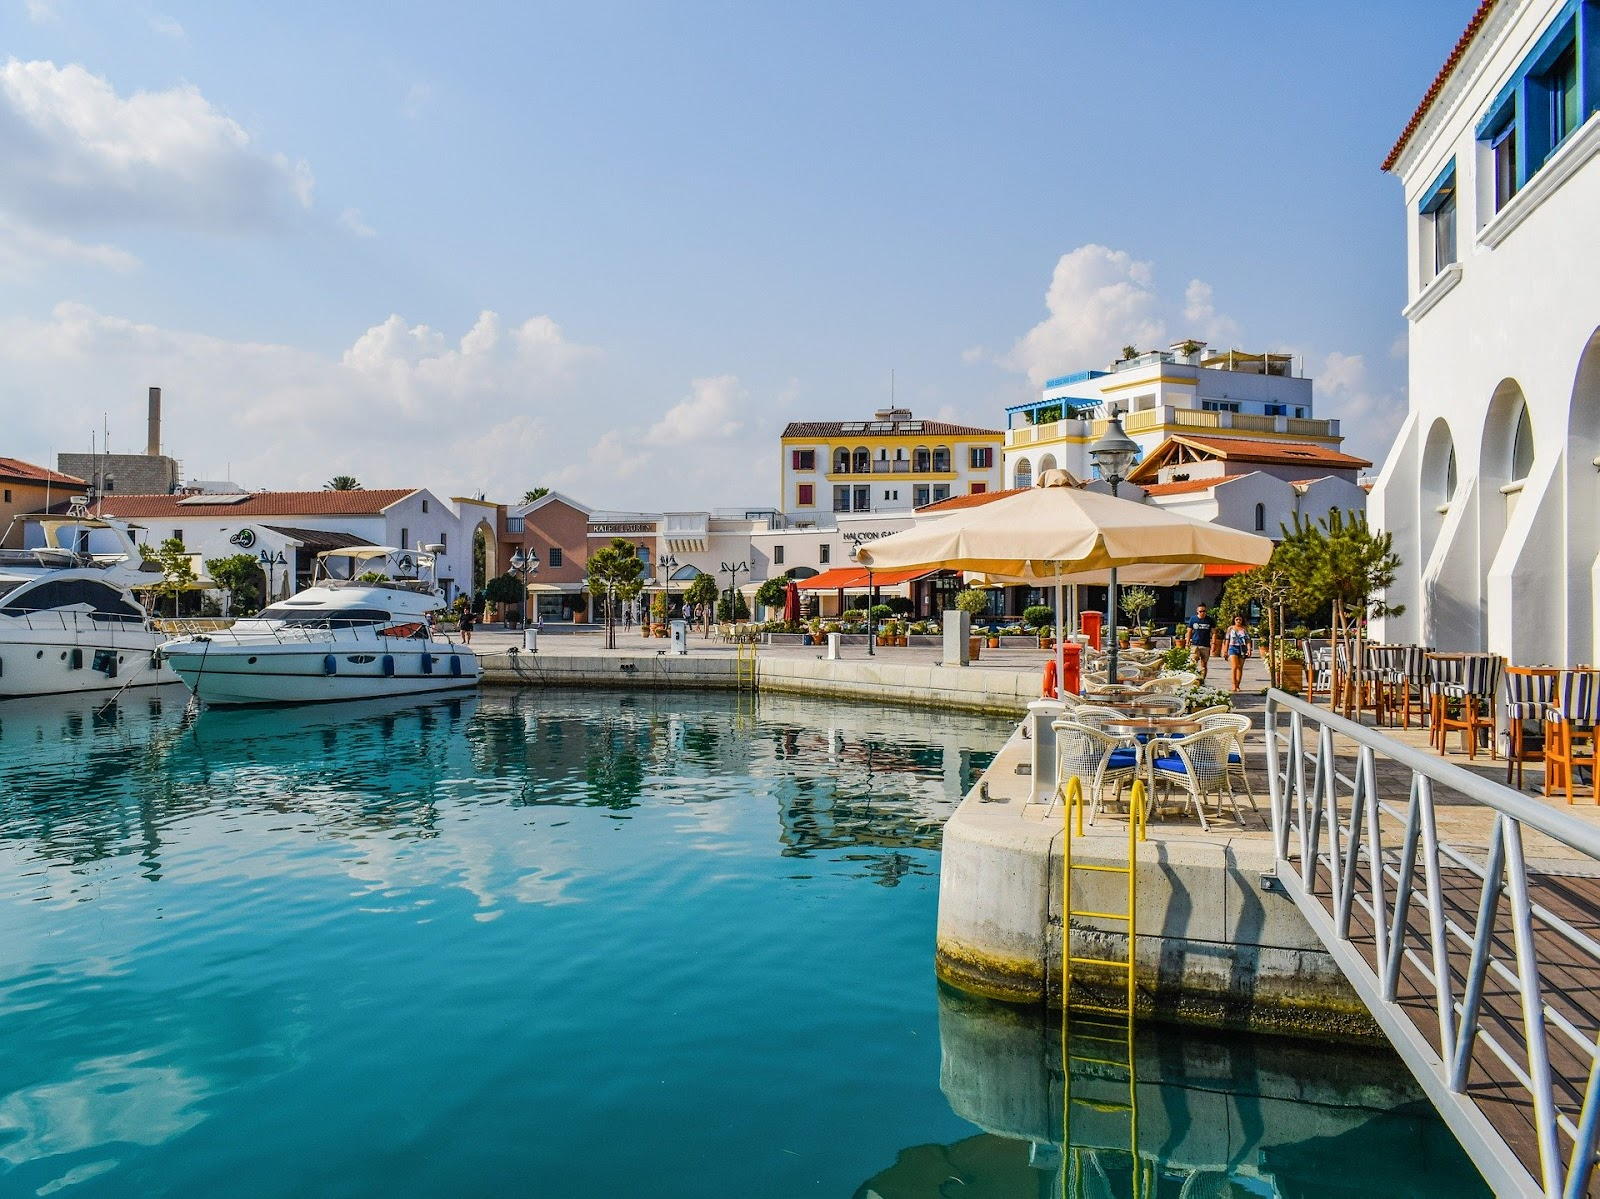 limassol marina, harbor, beautiful port with blue water, parked luxury yachts and a waterfront restaurant with outdoor seating under an umbrella. colorful buildings in the distance.